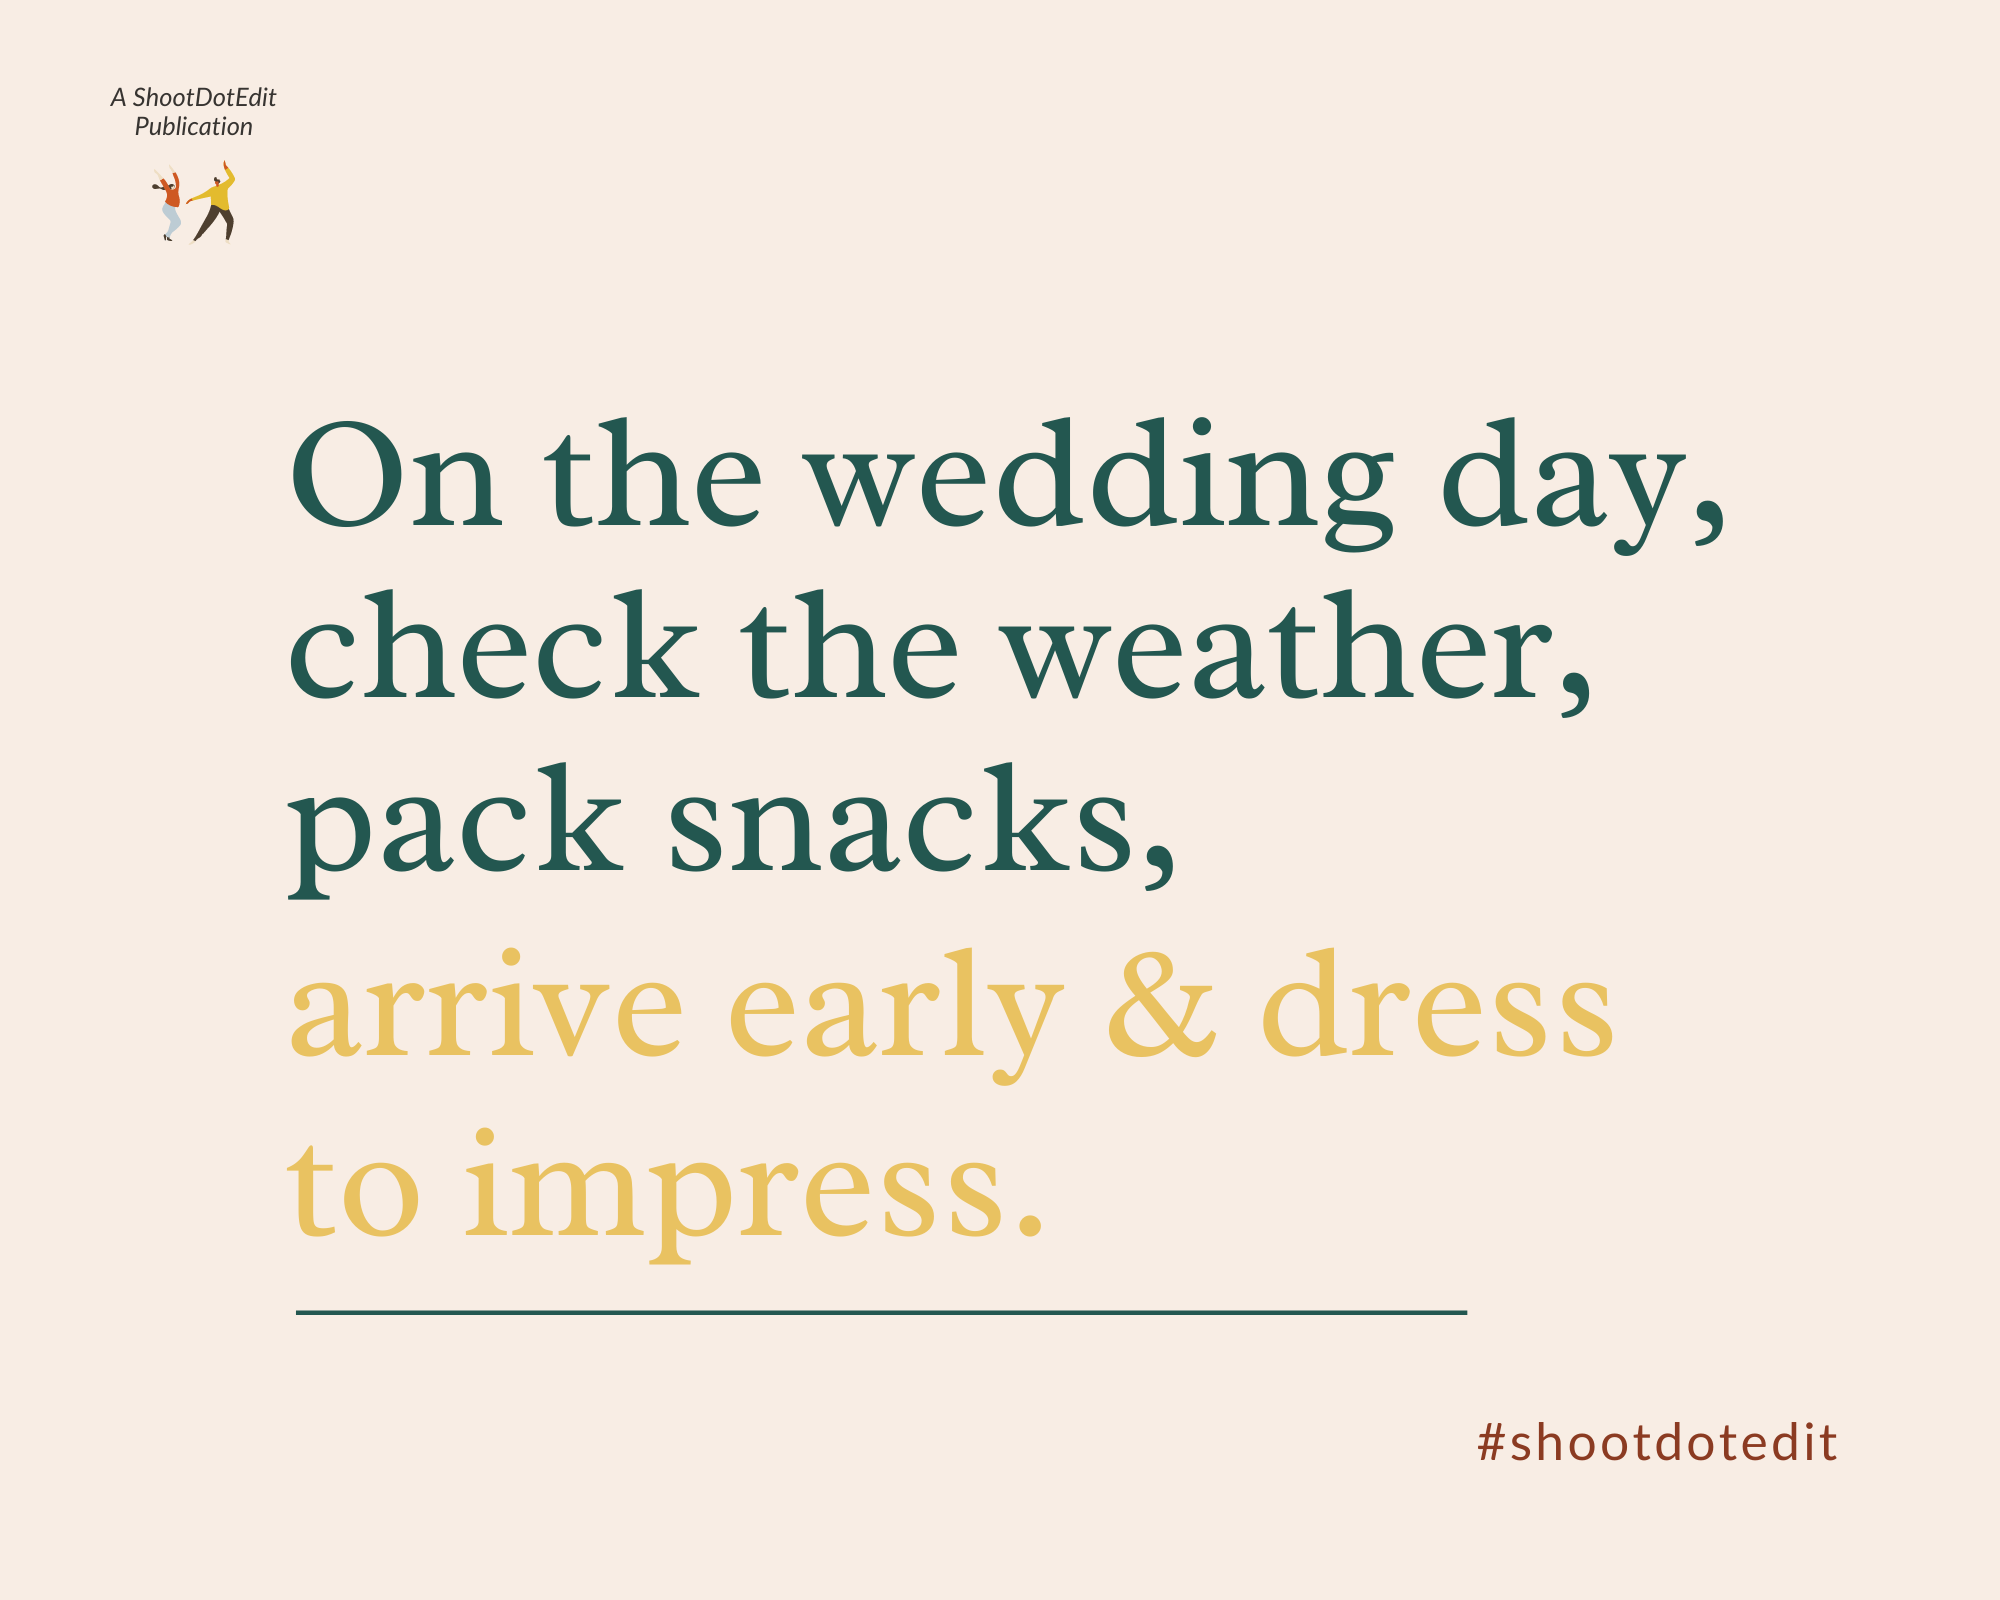 Infographic stating on the wedding day, check the weather, pack snacks, arrive early and dress to impress